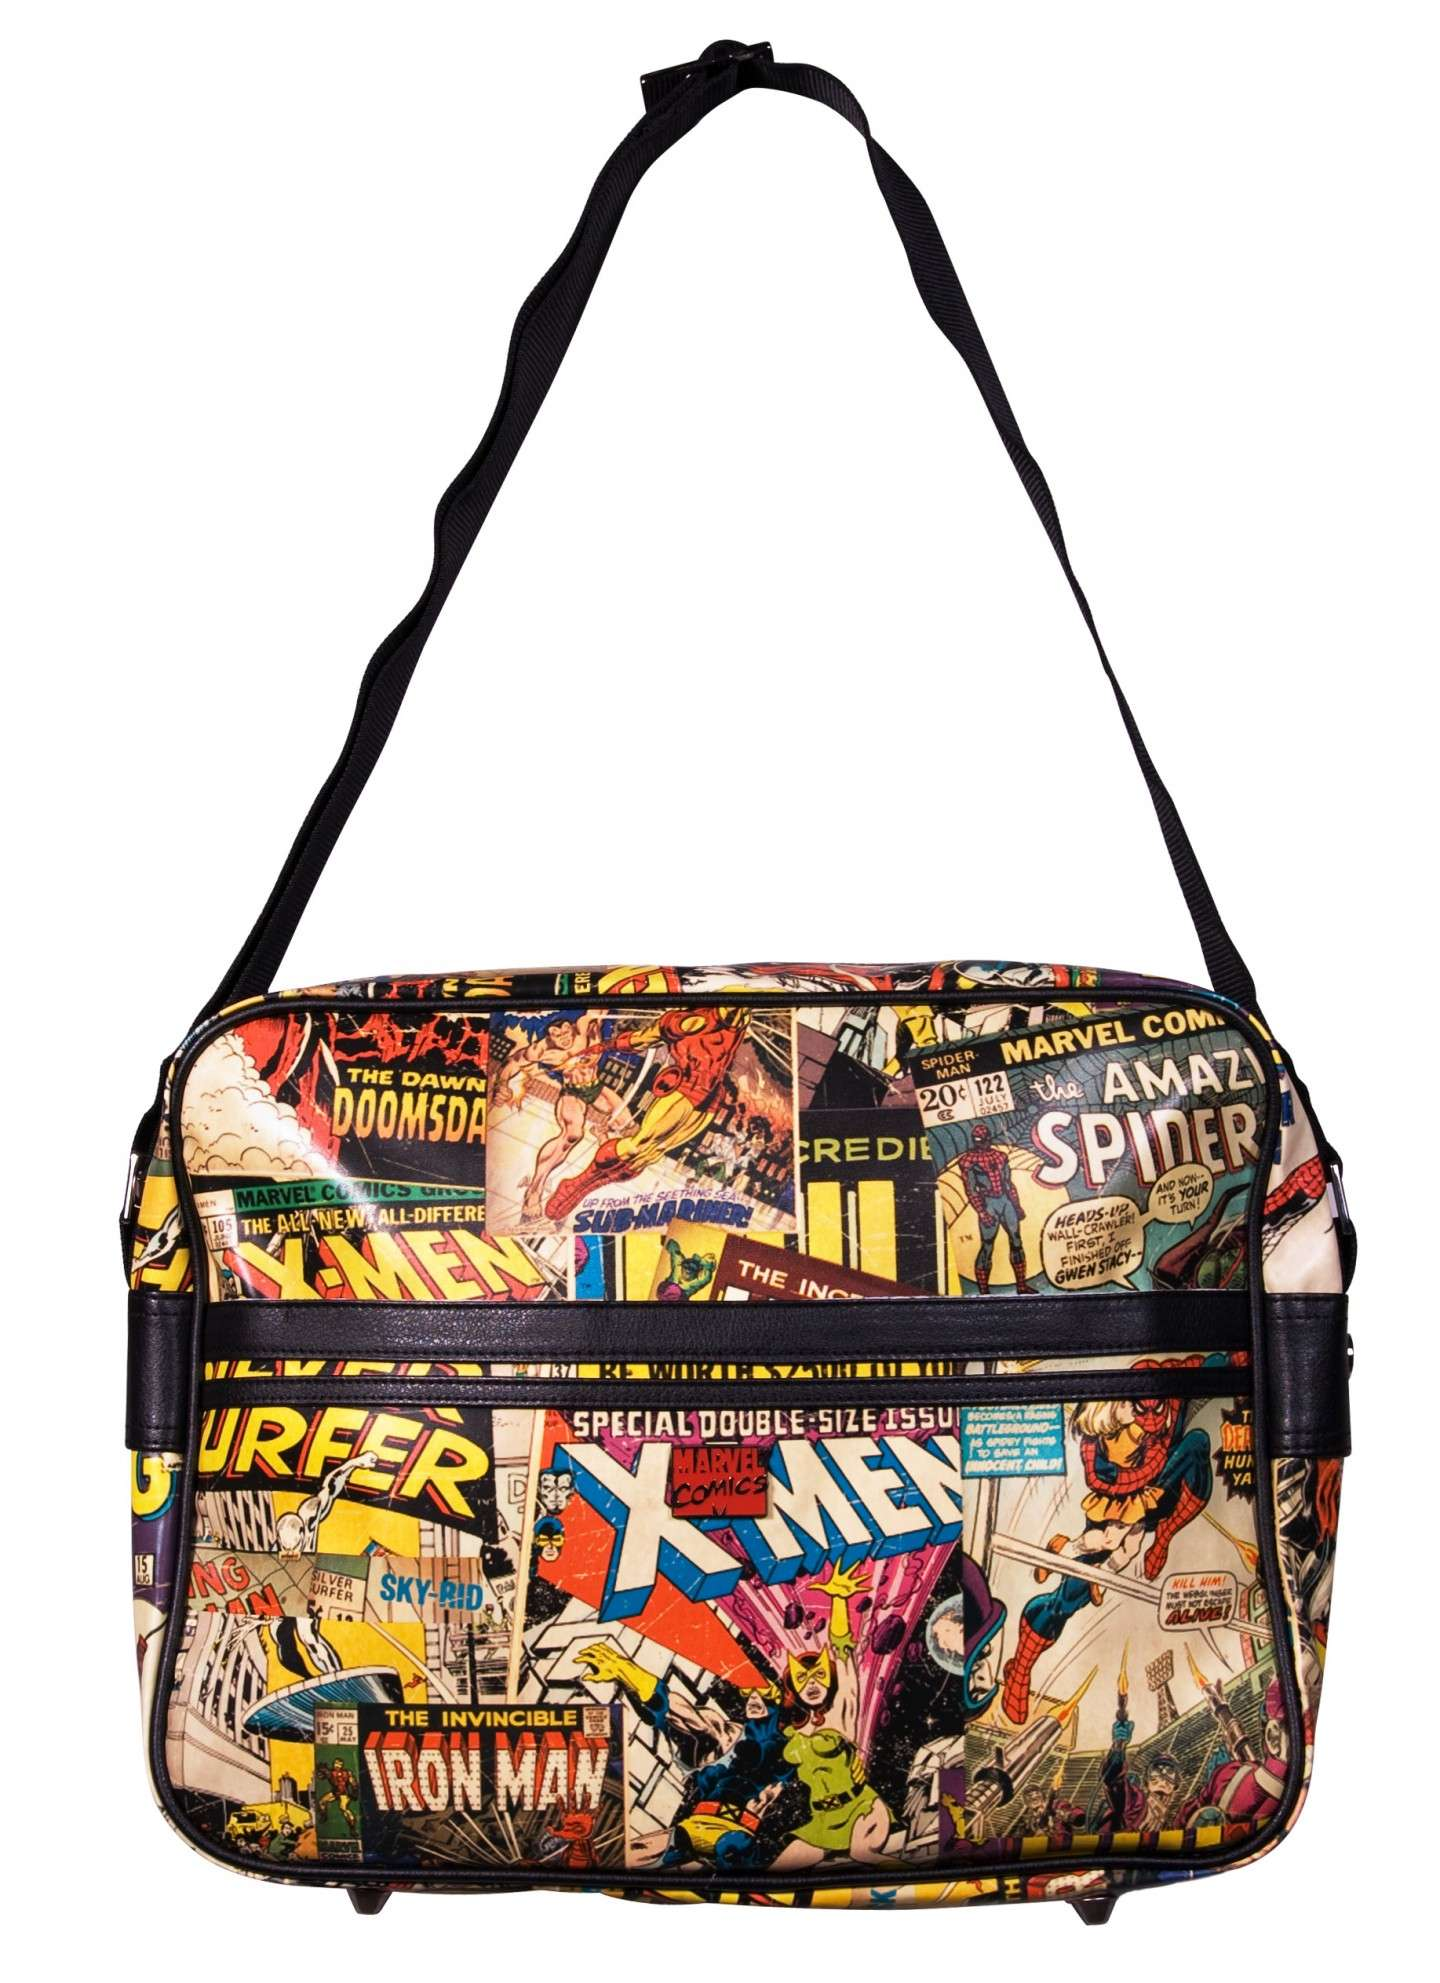 Borsa con personaggi Marvel